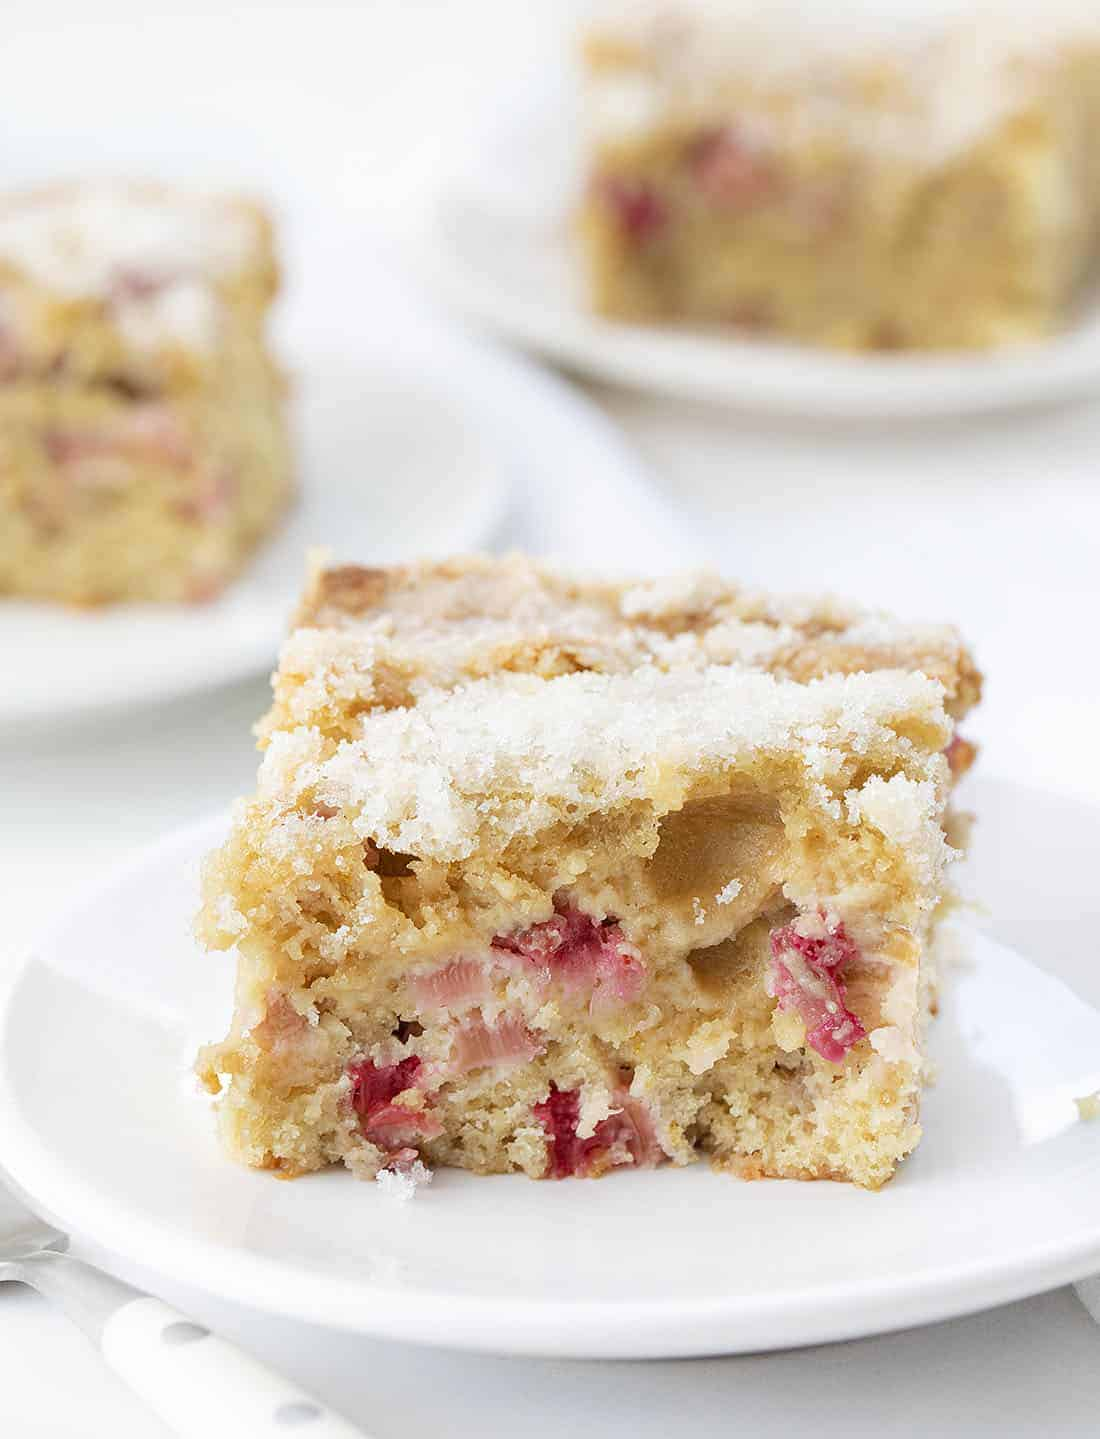 Pieces of Rhubarb Cake on White Plates